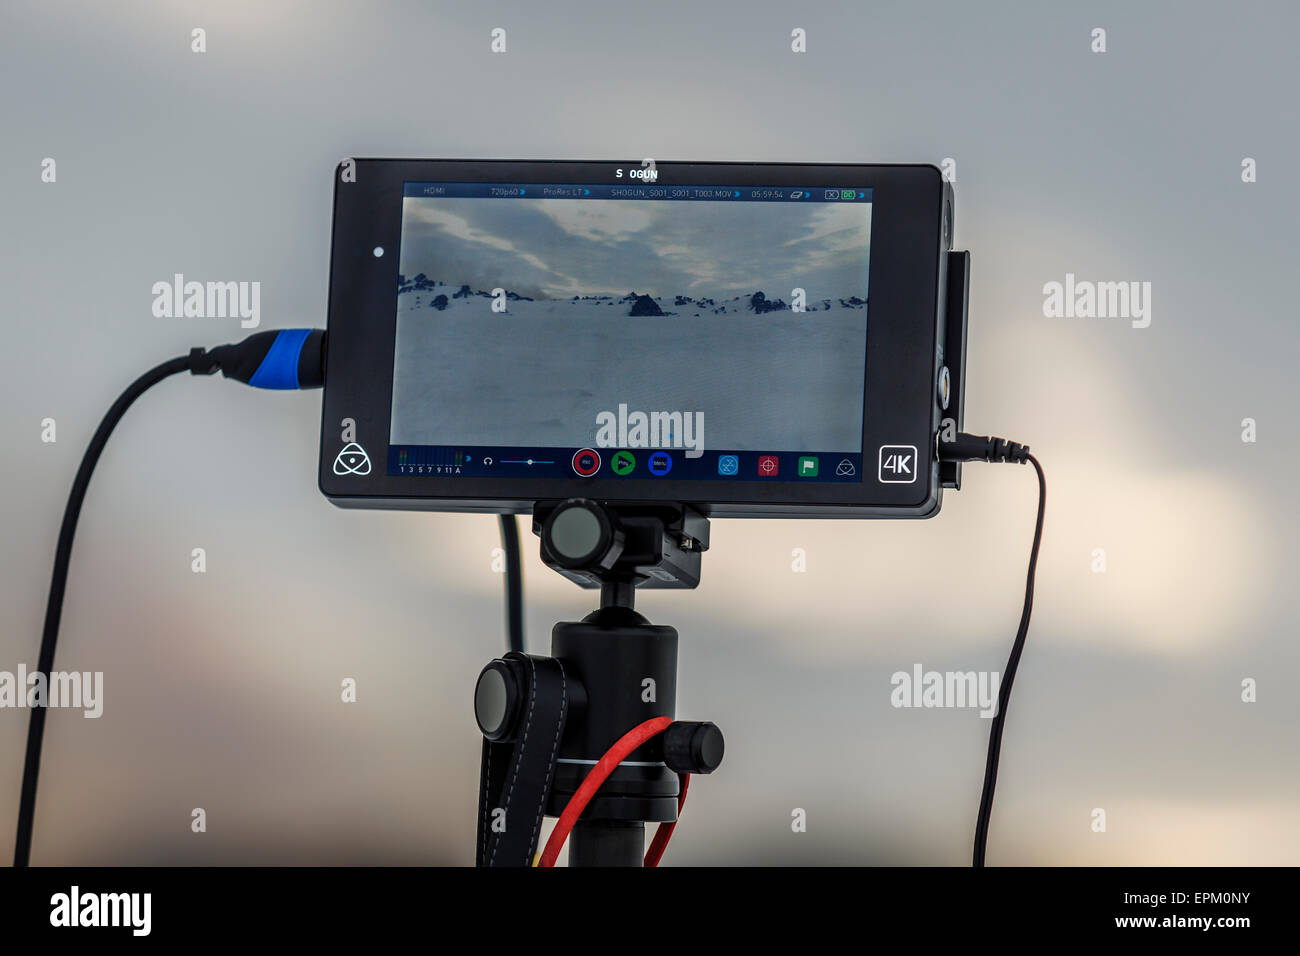 Screen for Radio controlled Drone. Eruption at the Holuhraun Fissure, Bardarbunga Volcano,Iceland - Stock Image